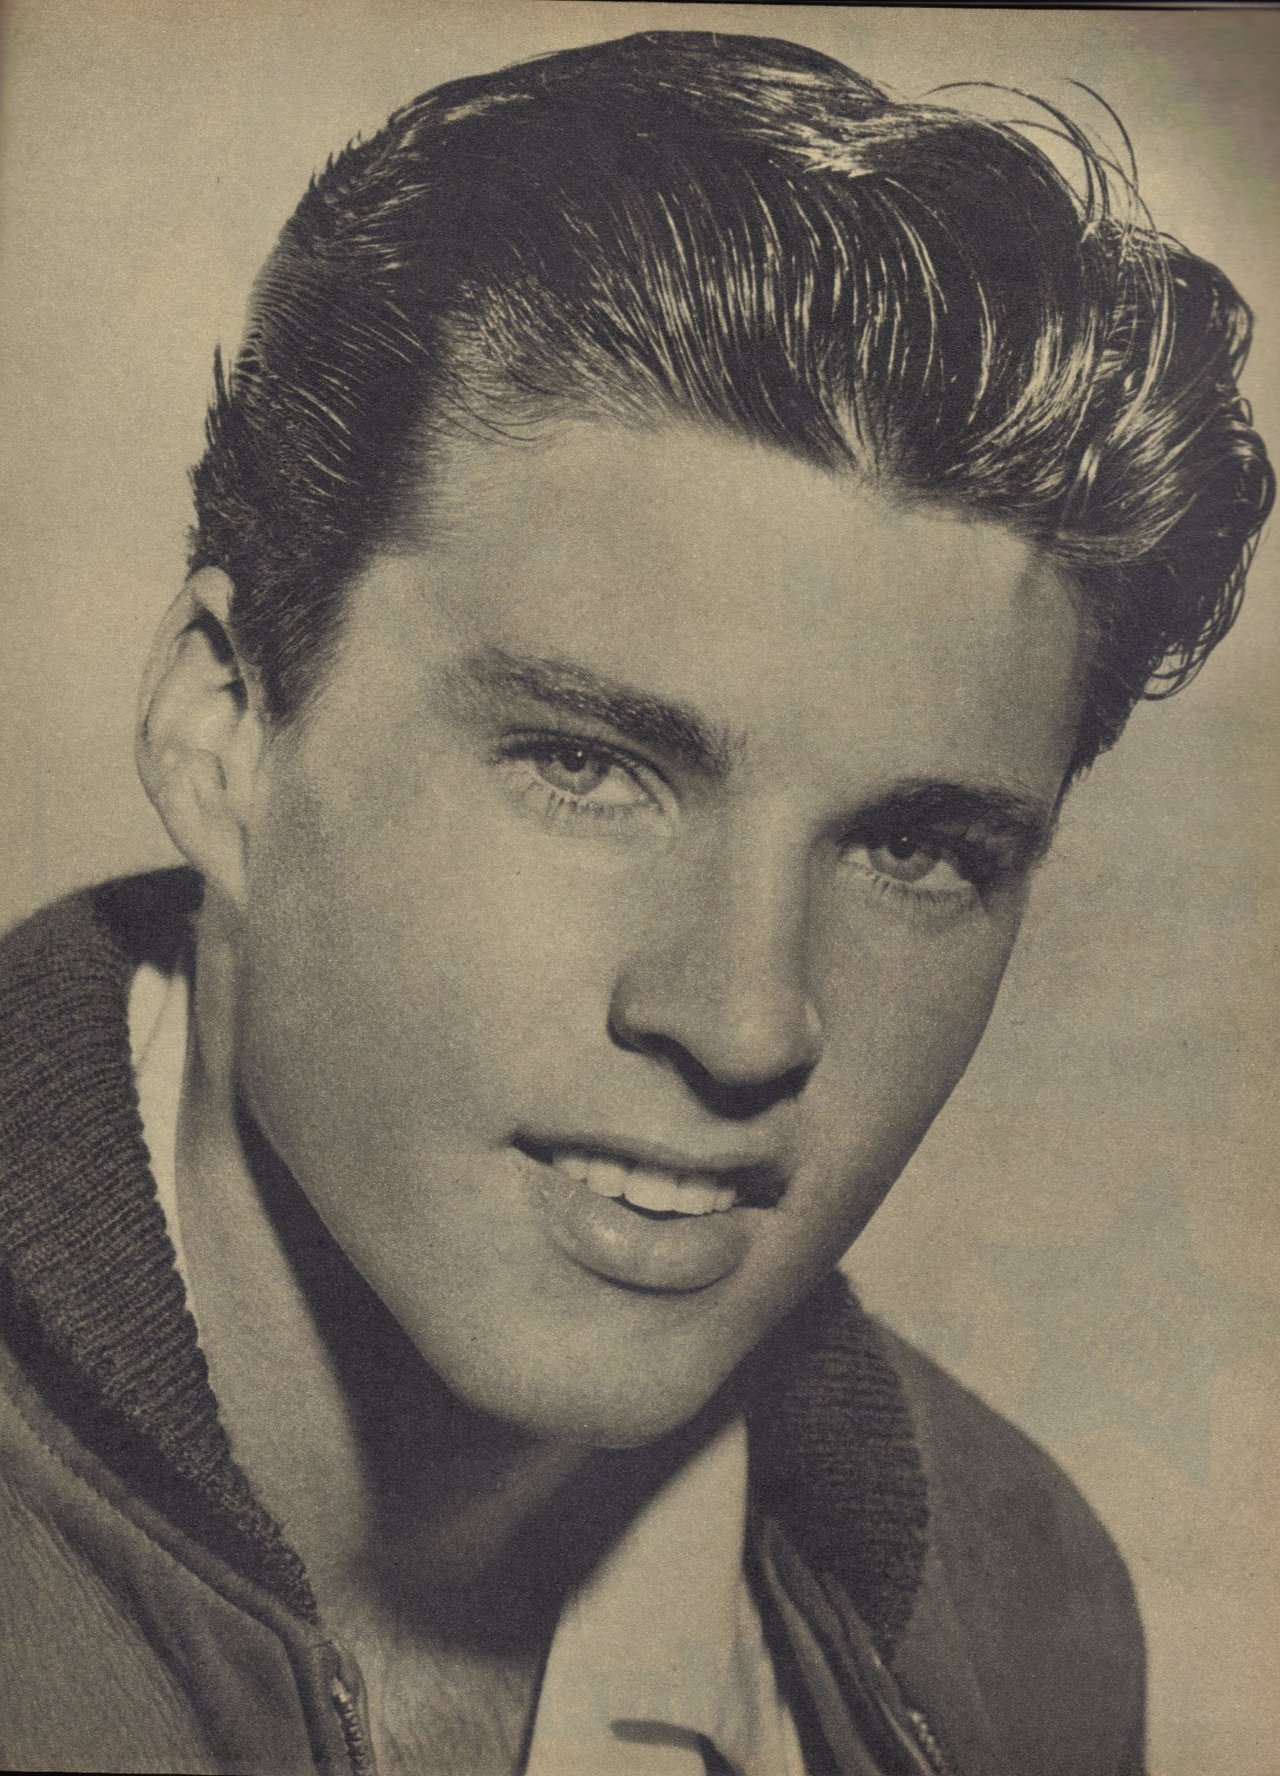 My Bucket's Got A Hole In It by Ricky Nelson